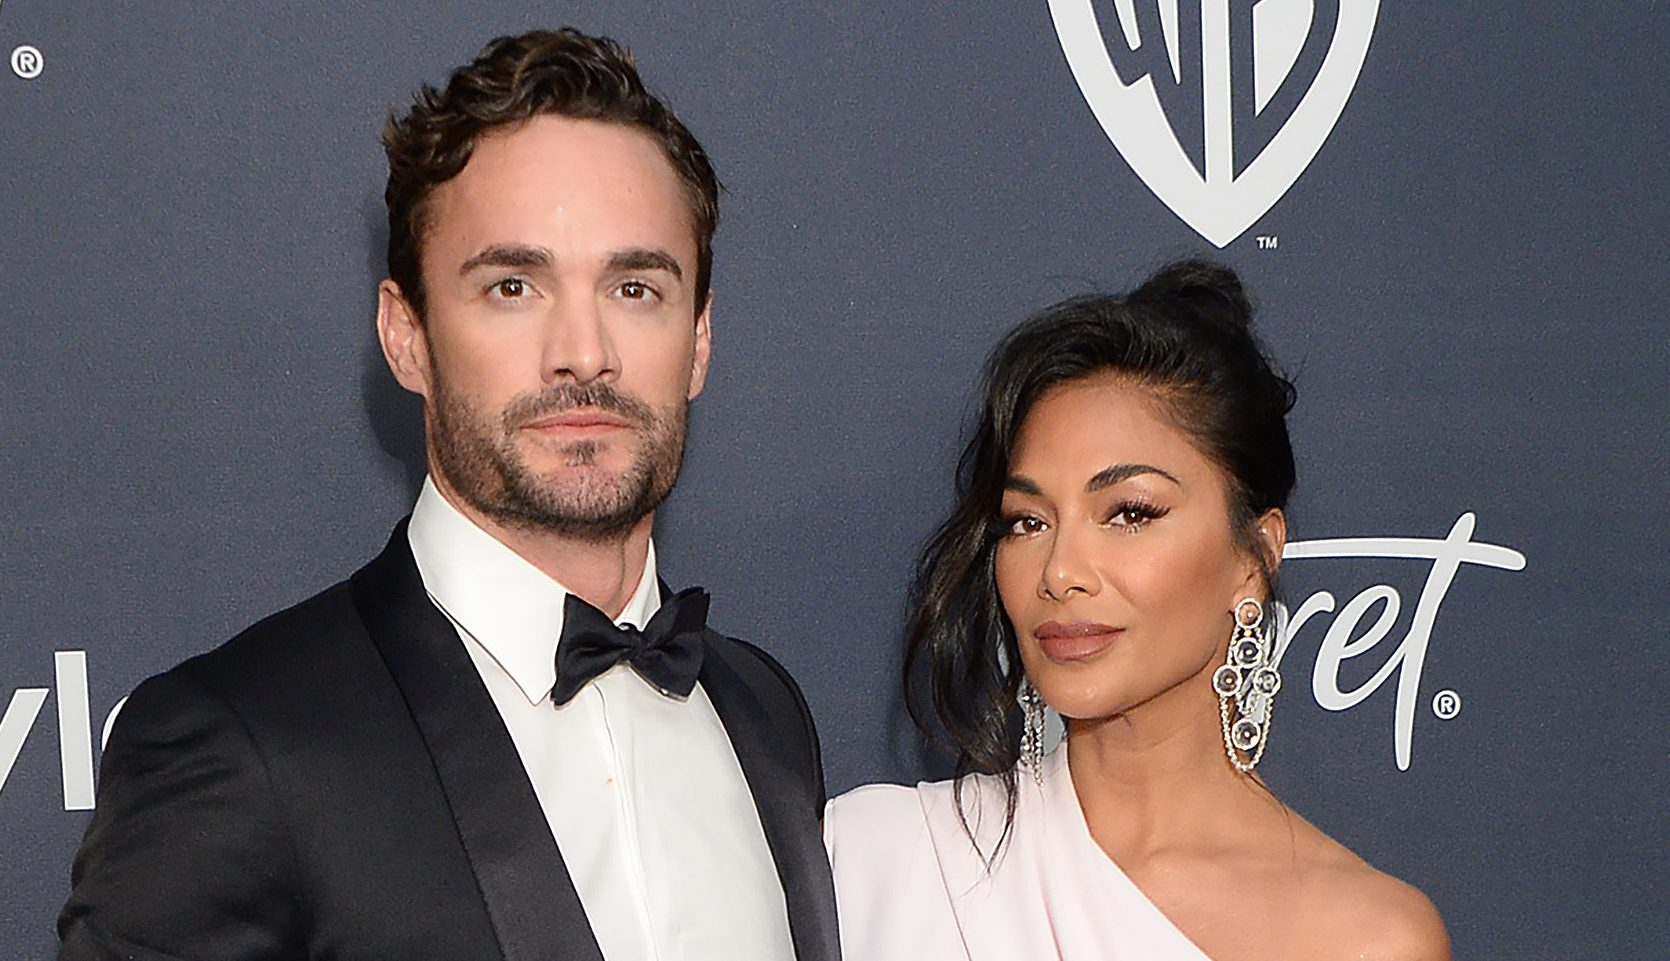 Nicole Scherzinger and Thom Evans 'confirm' romance as they make red carpet debut